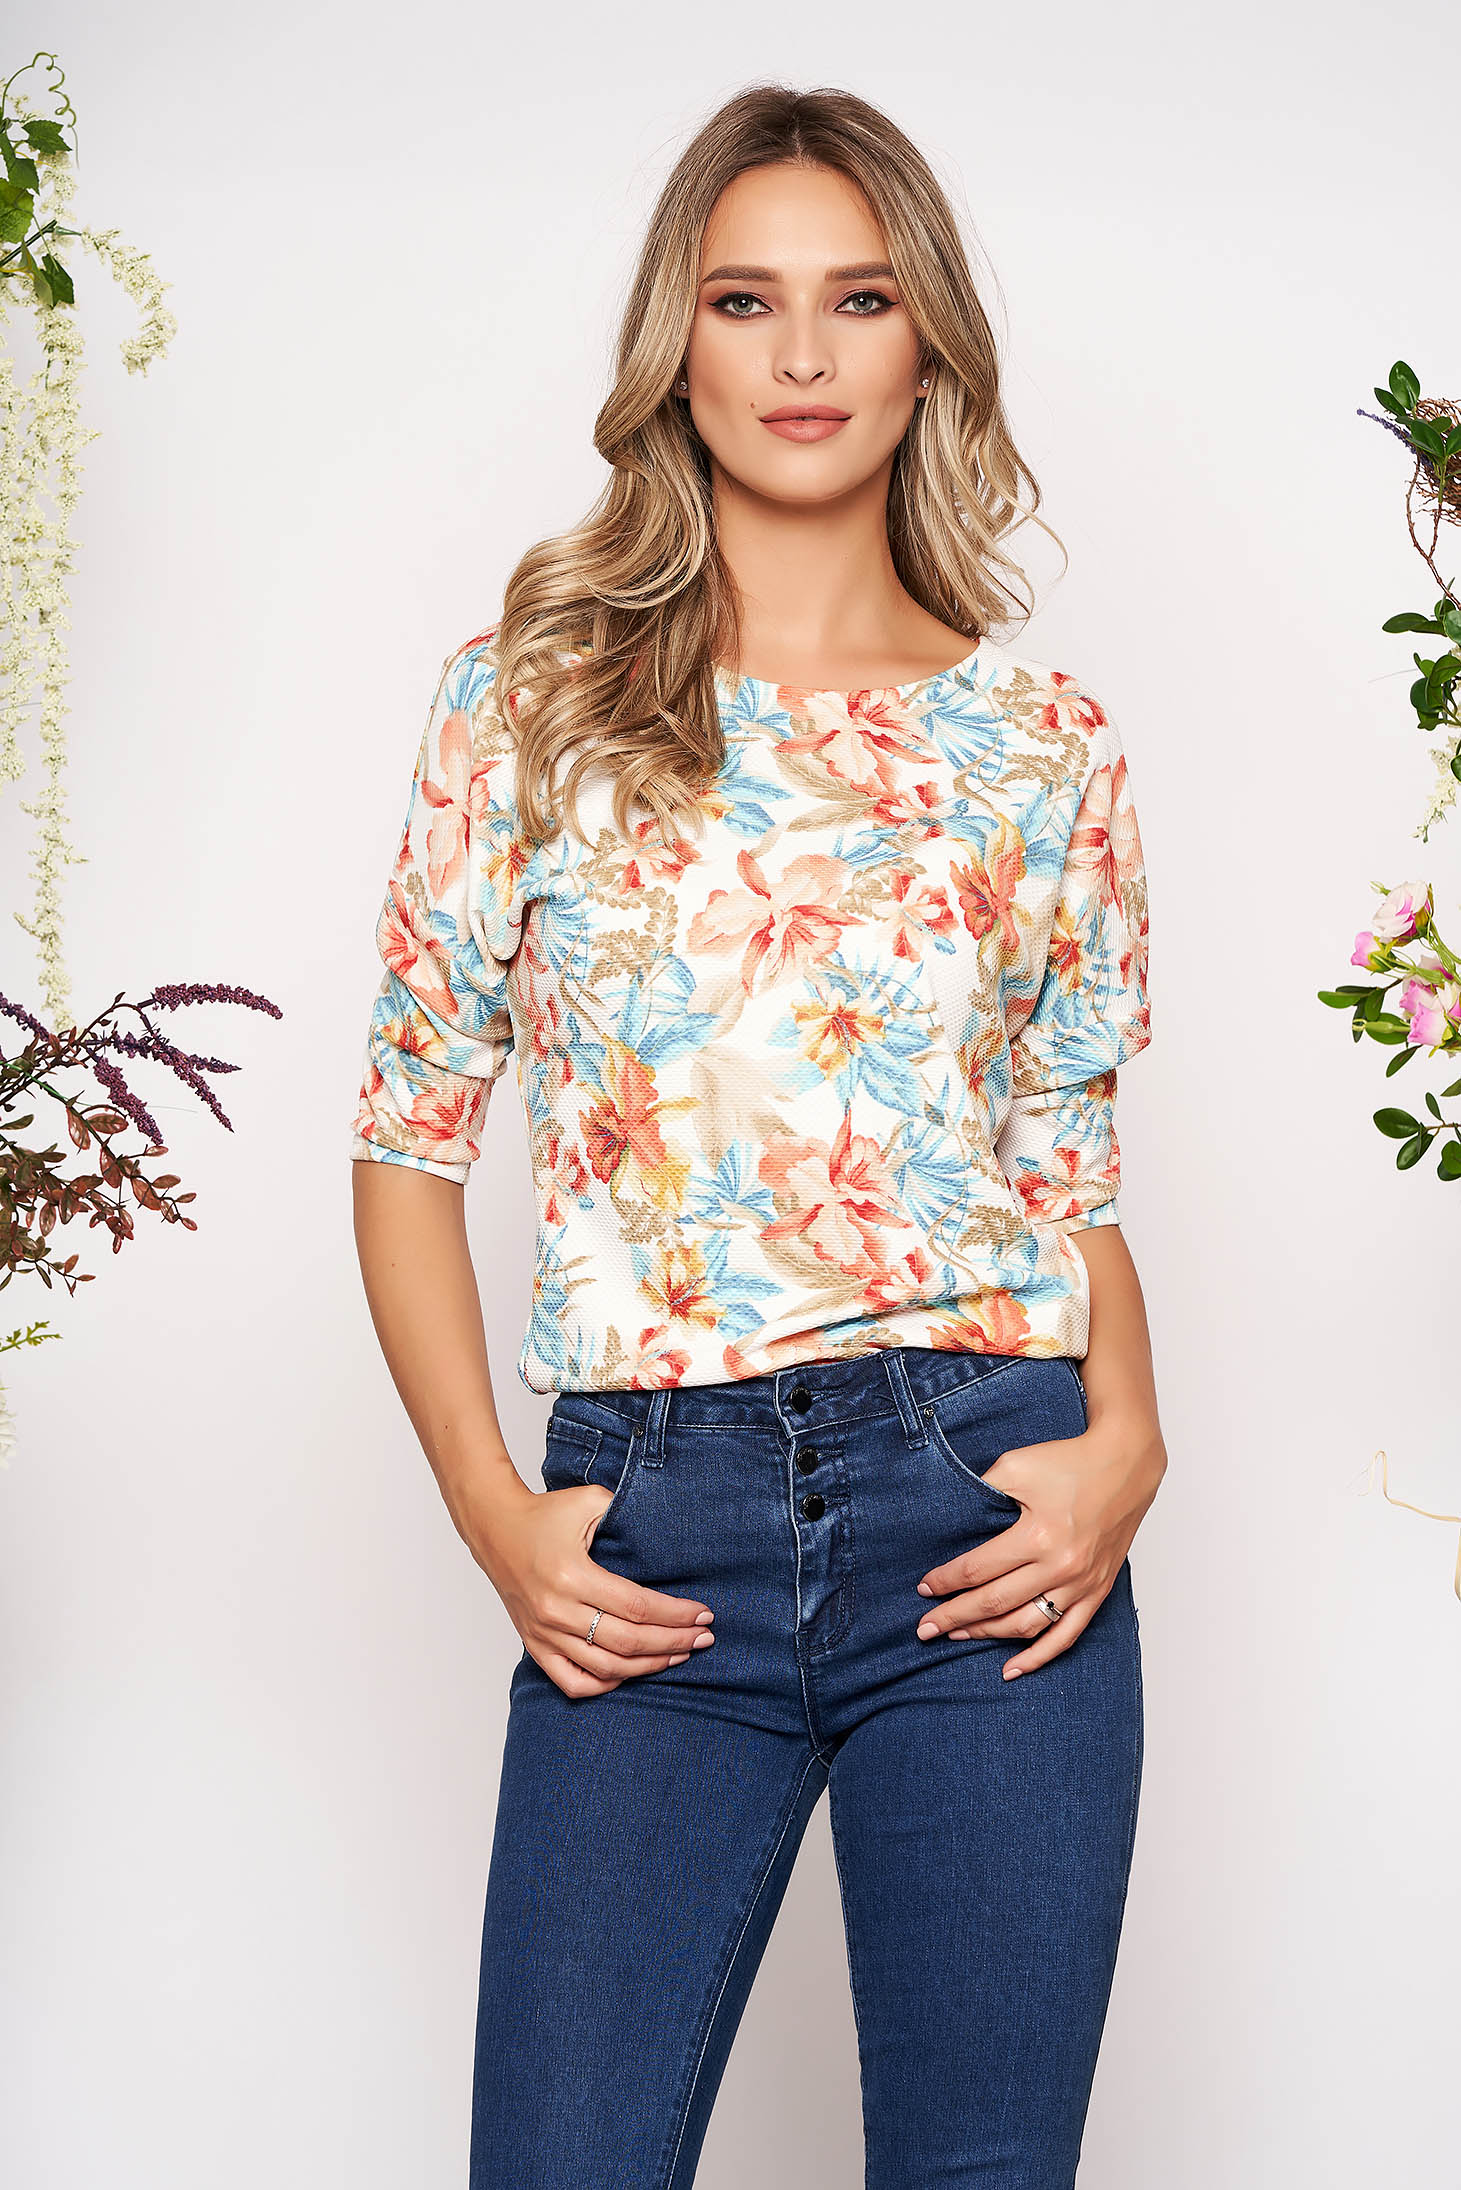 StarShinerS white casual women`s blouse slightly elastic fabric wrinkled material with floral prints 3/4 sleeve